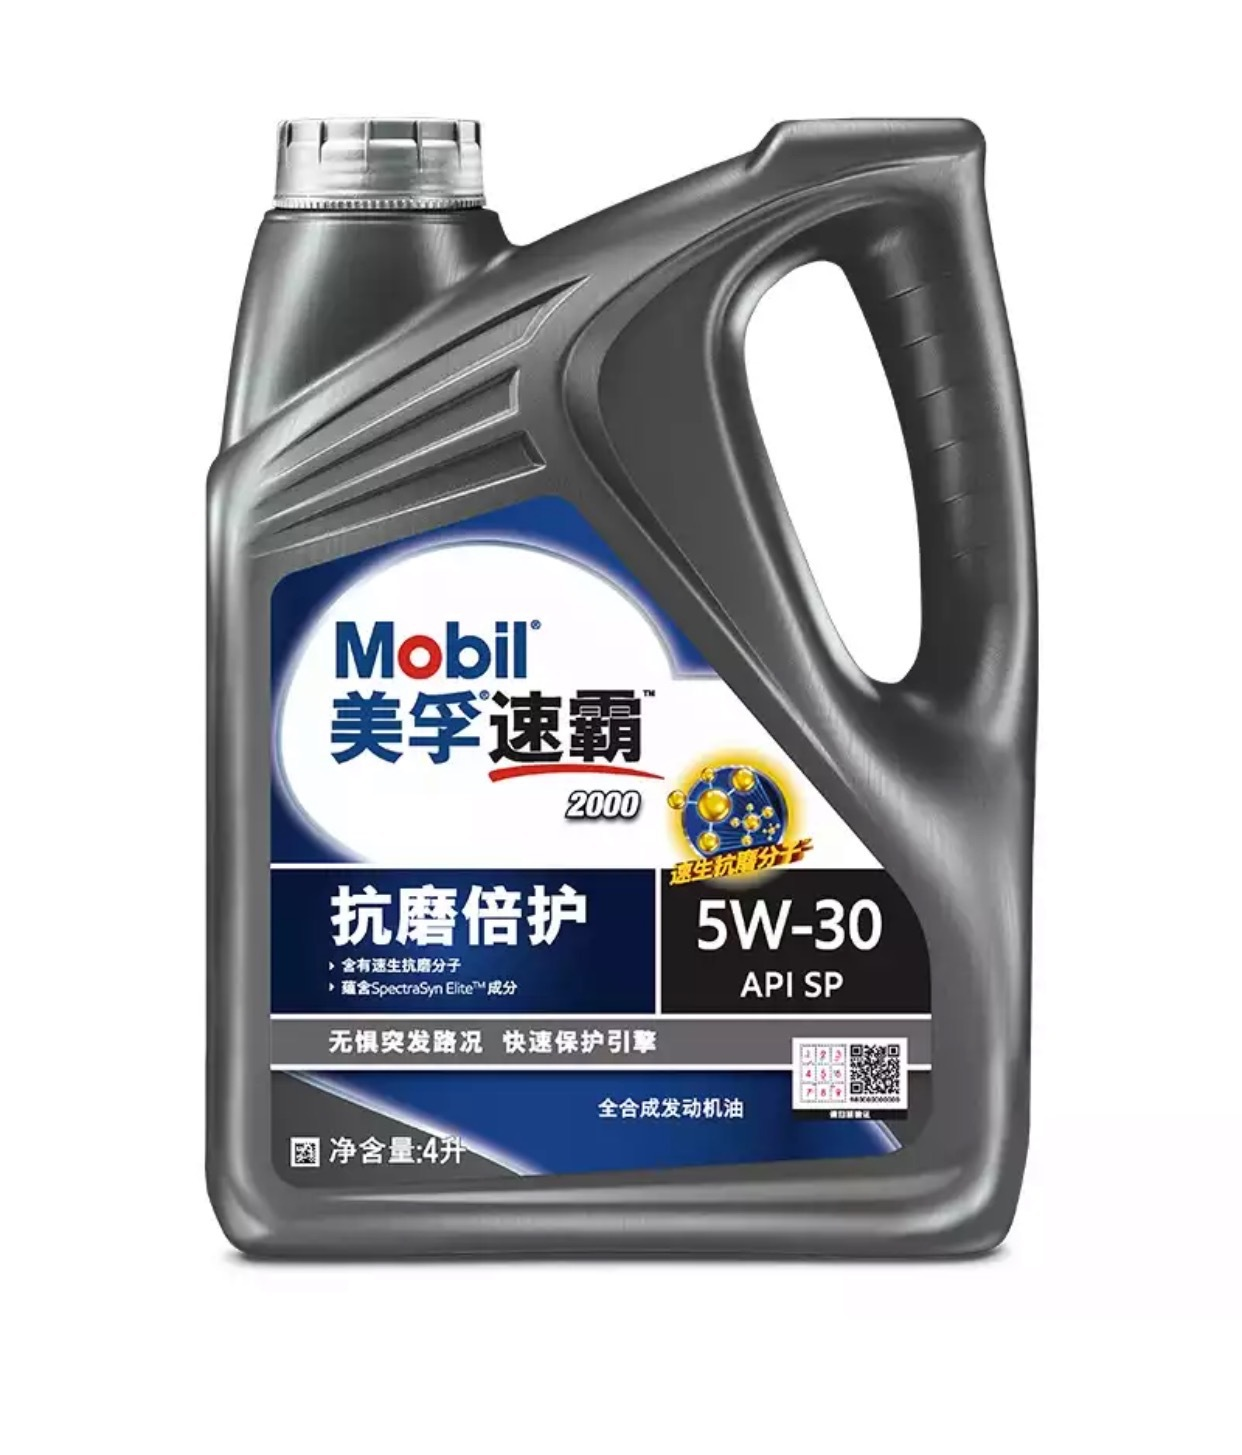 Mobil Mobil Speedmaster 2000 Fully Synthetic Engine Oil 5W-30 Automotive Lubricant 5W30 SP Grade 4L